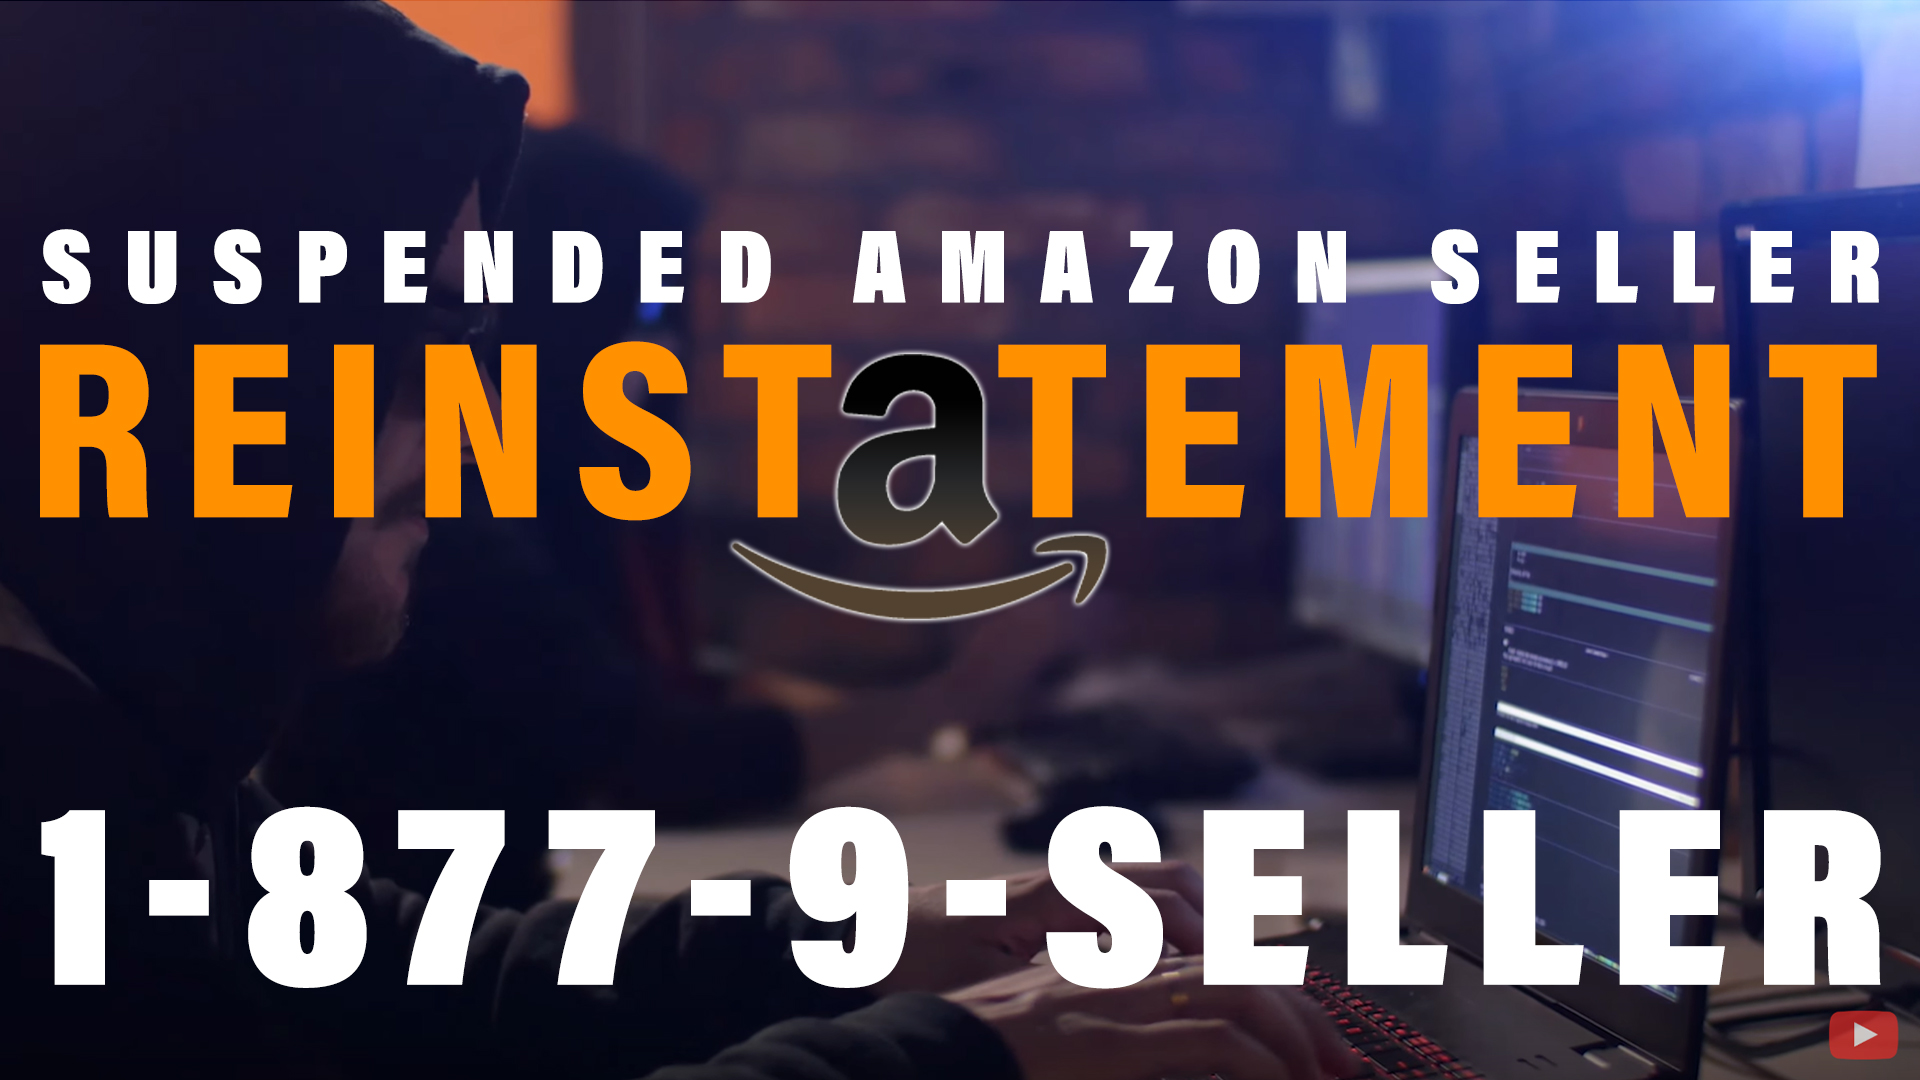 suspended Amazon seller account